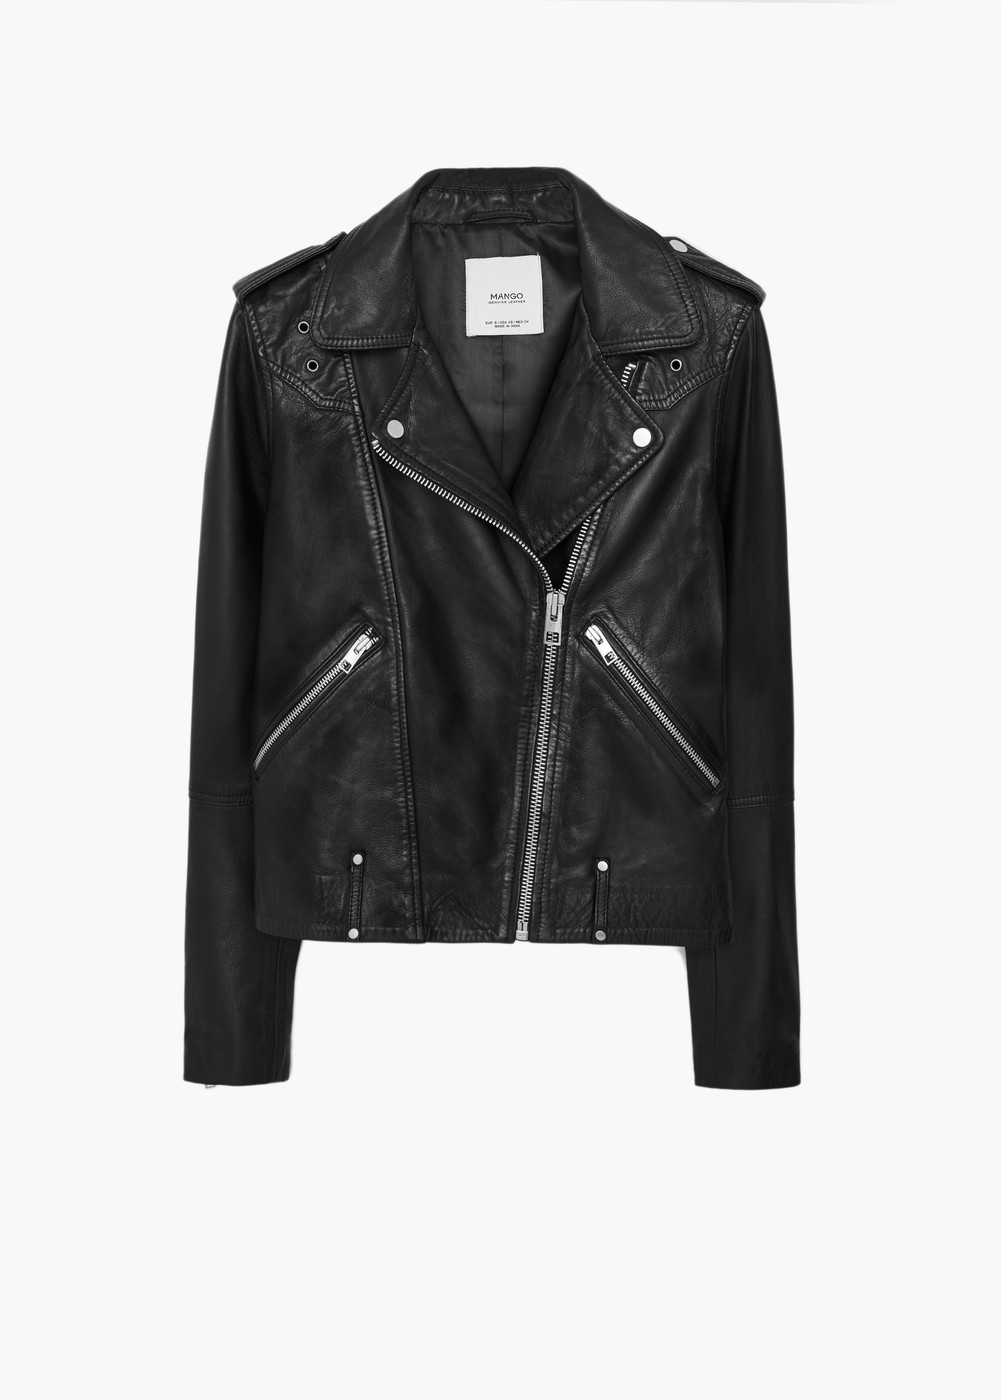 ac0db90d3c11 Leather Jacket ...is always a must in your wardrobe!